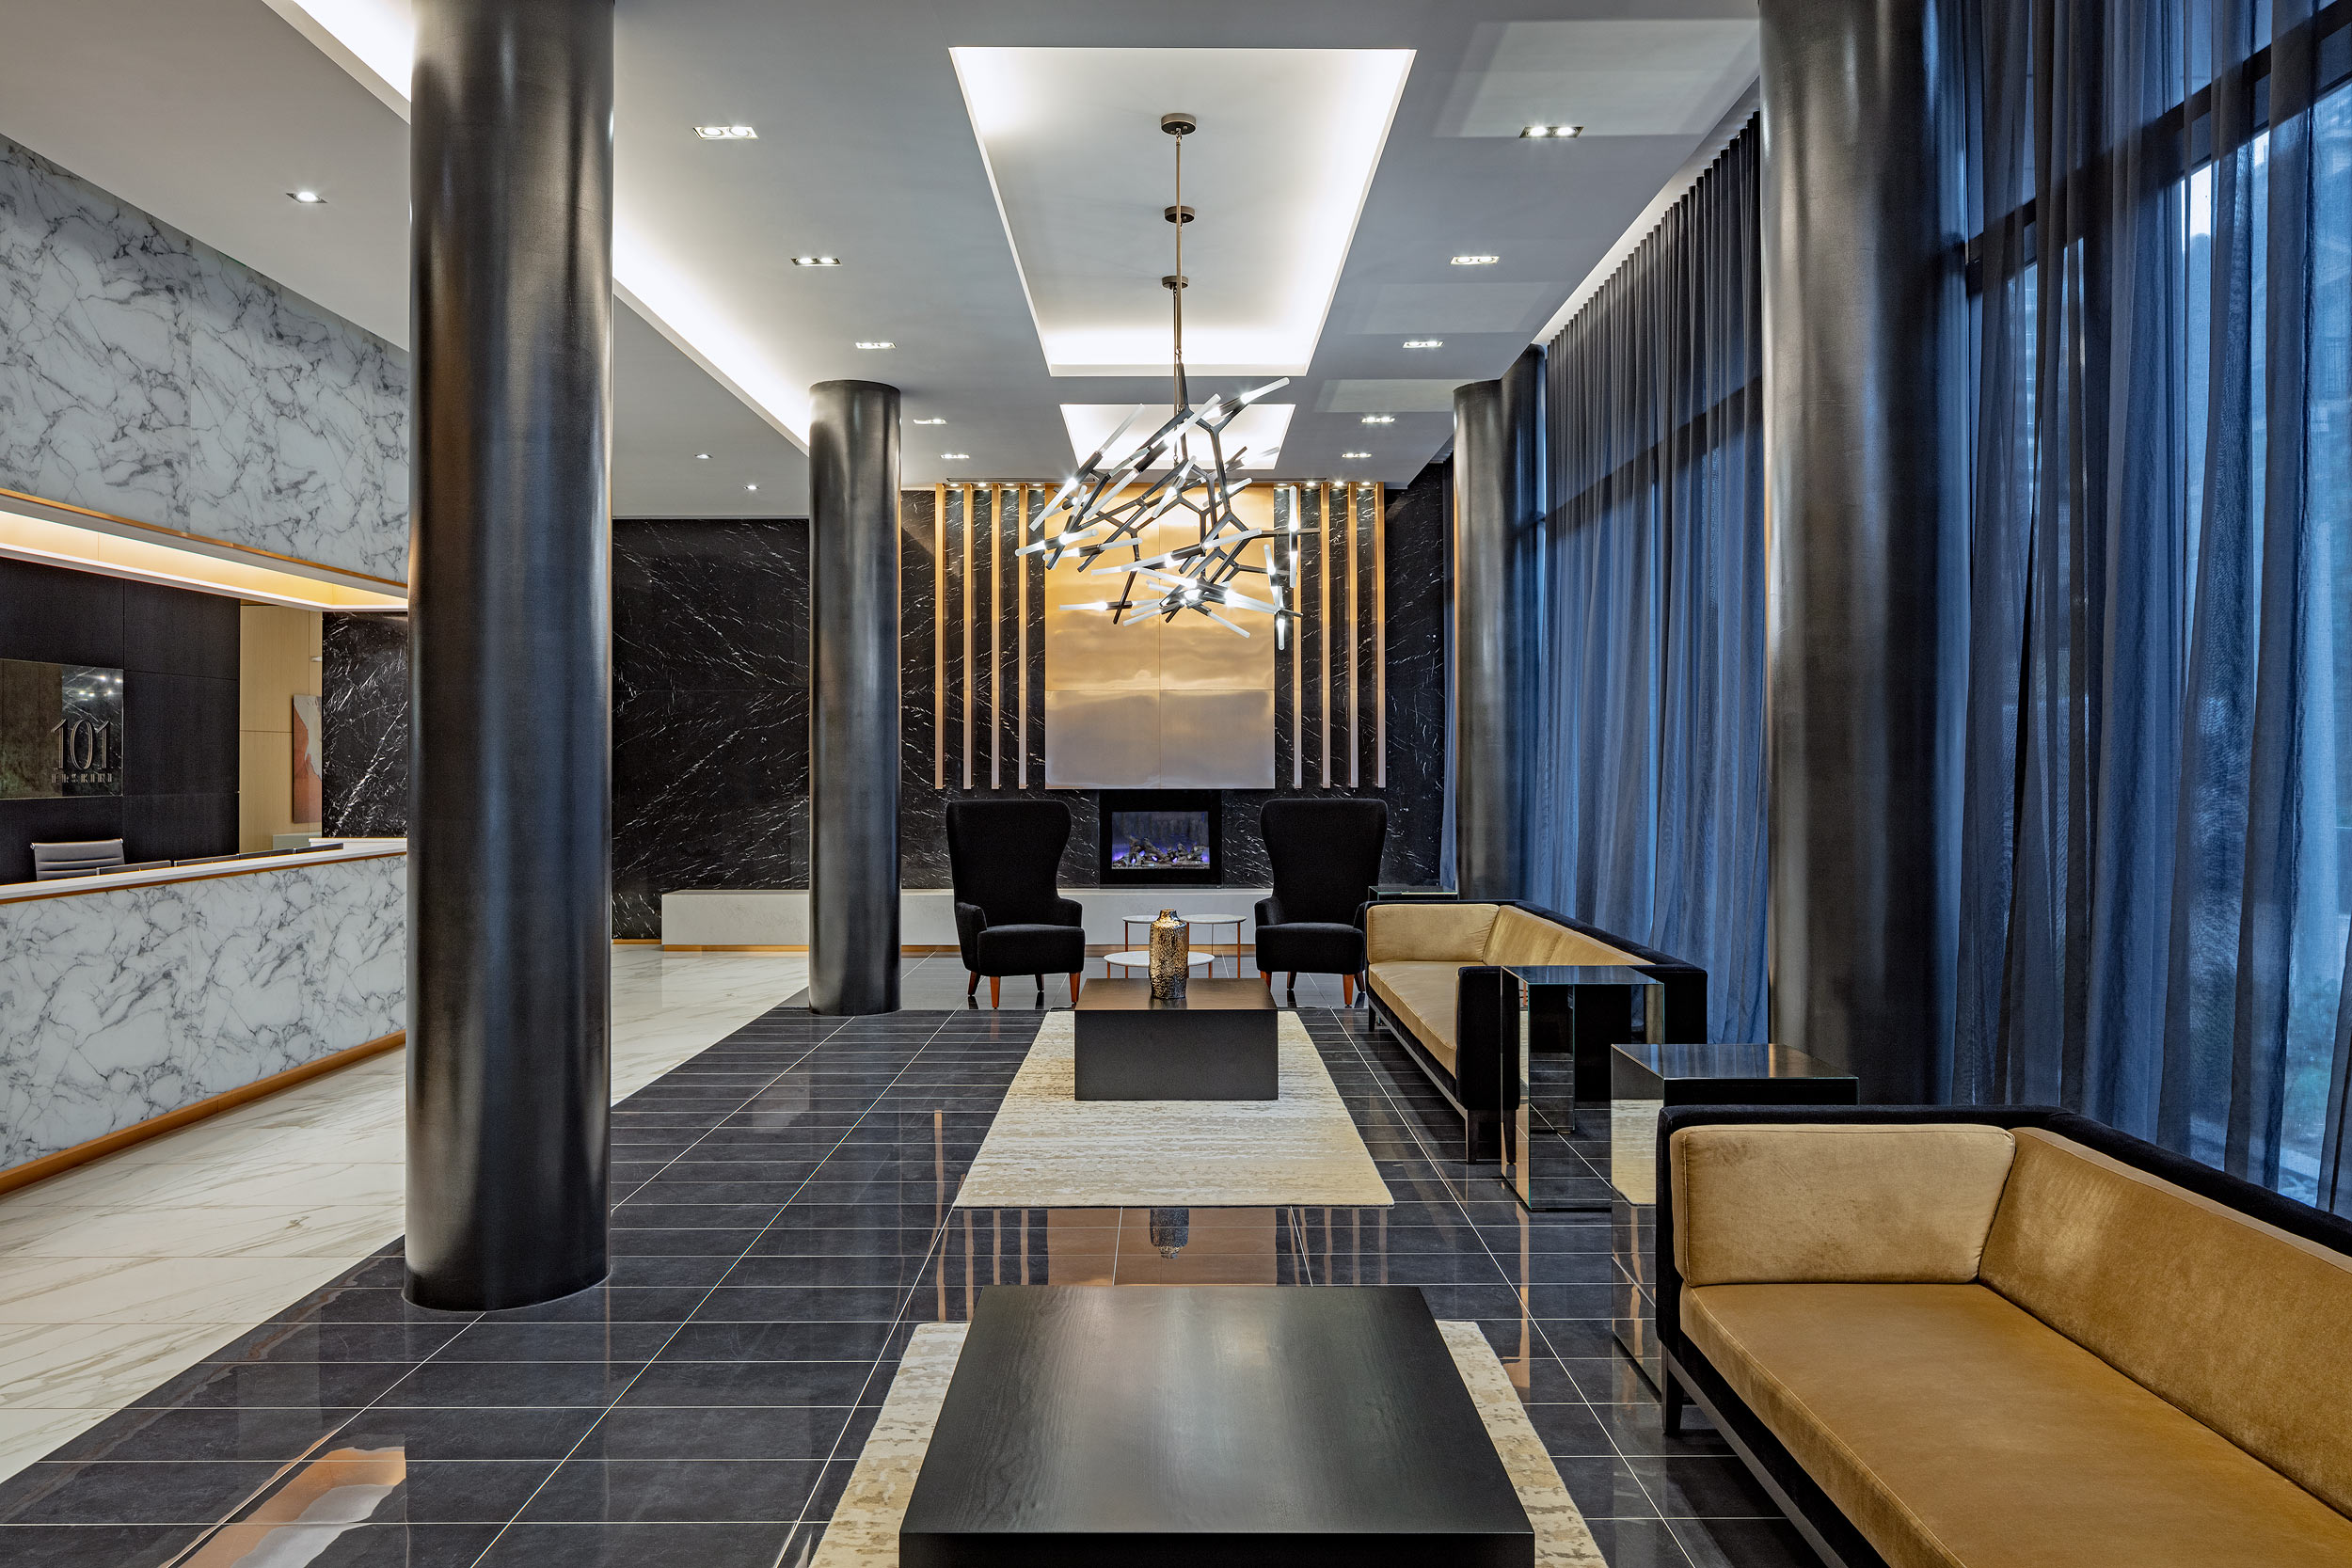 Condominium lobby, Peter A. Sellar Architectural Photographer